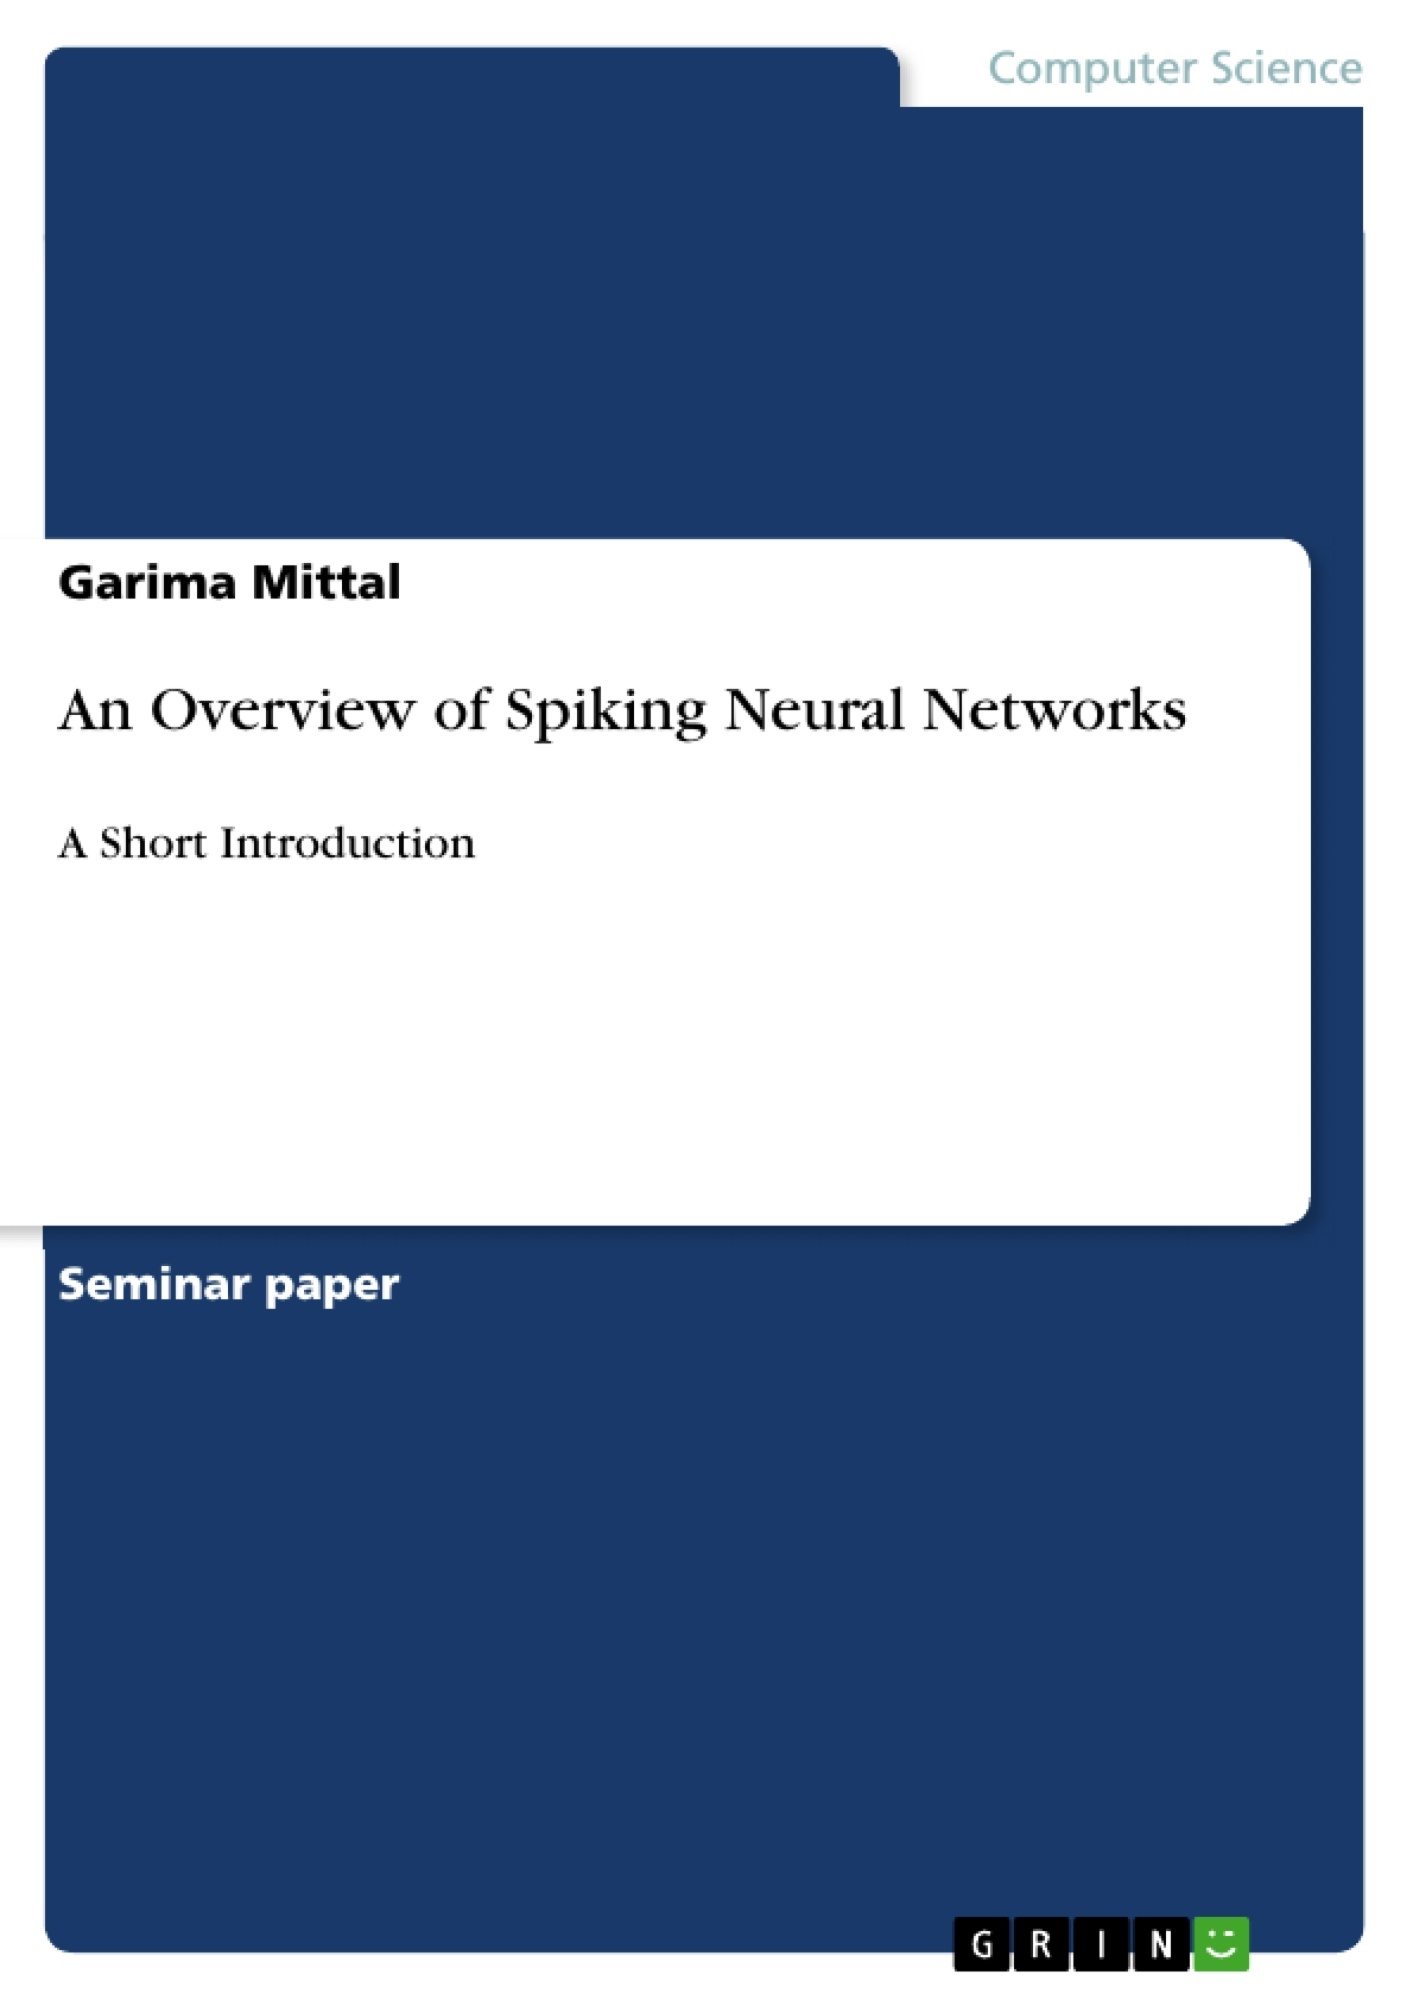 Title: An Overview of Spiking Neural Networks